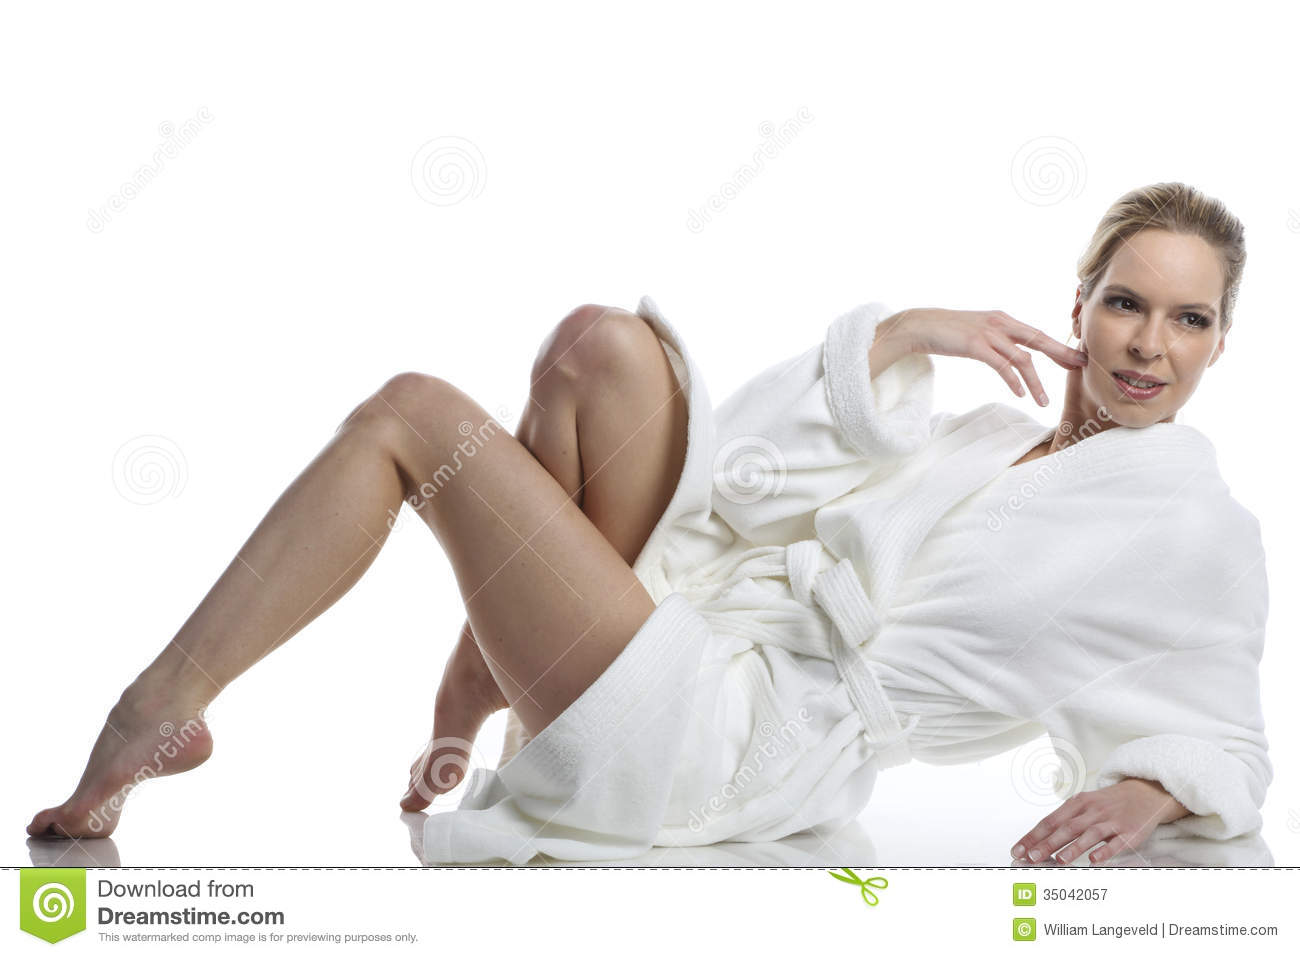 Bath Shower Seats Woman In White Bathrobe Stock Image Image Of Robe